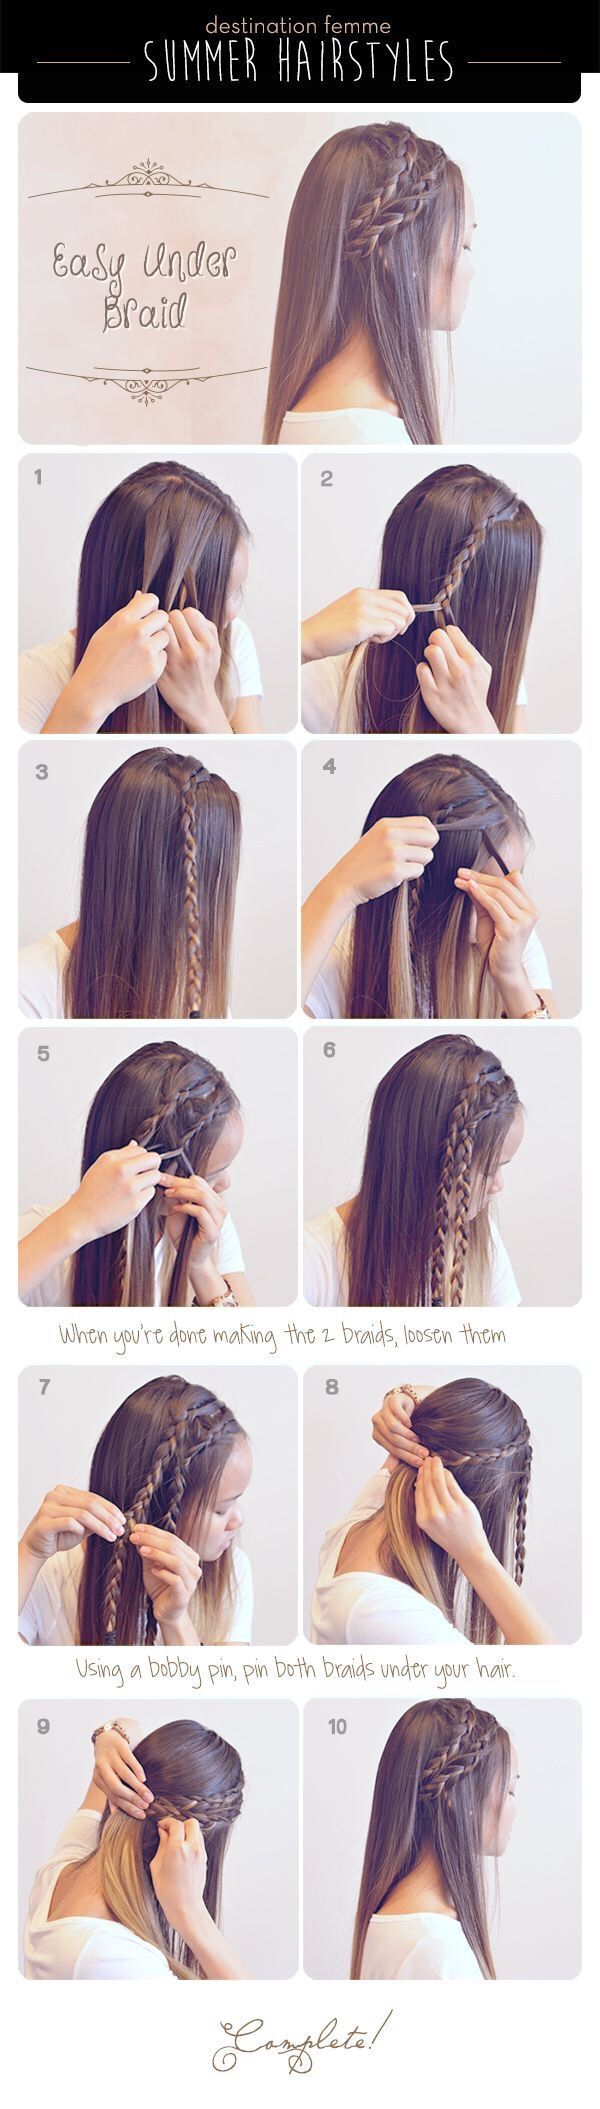 Easy Underbraid Tutorial#Beauty#Trusper#Tip